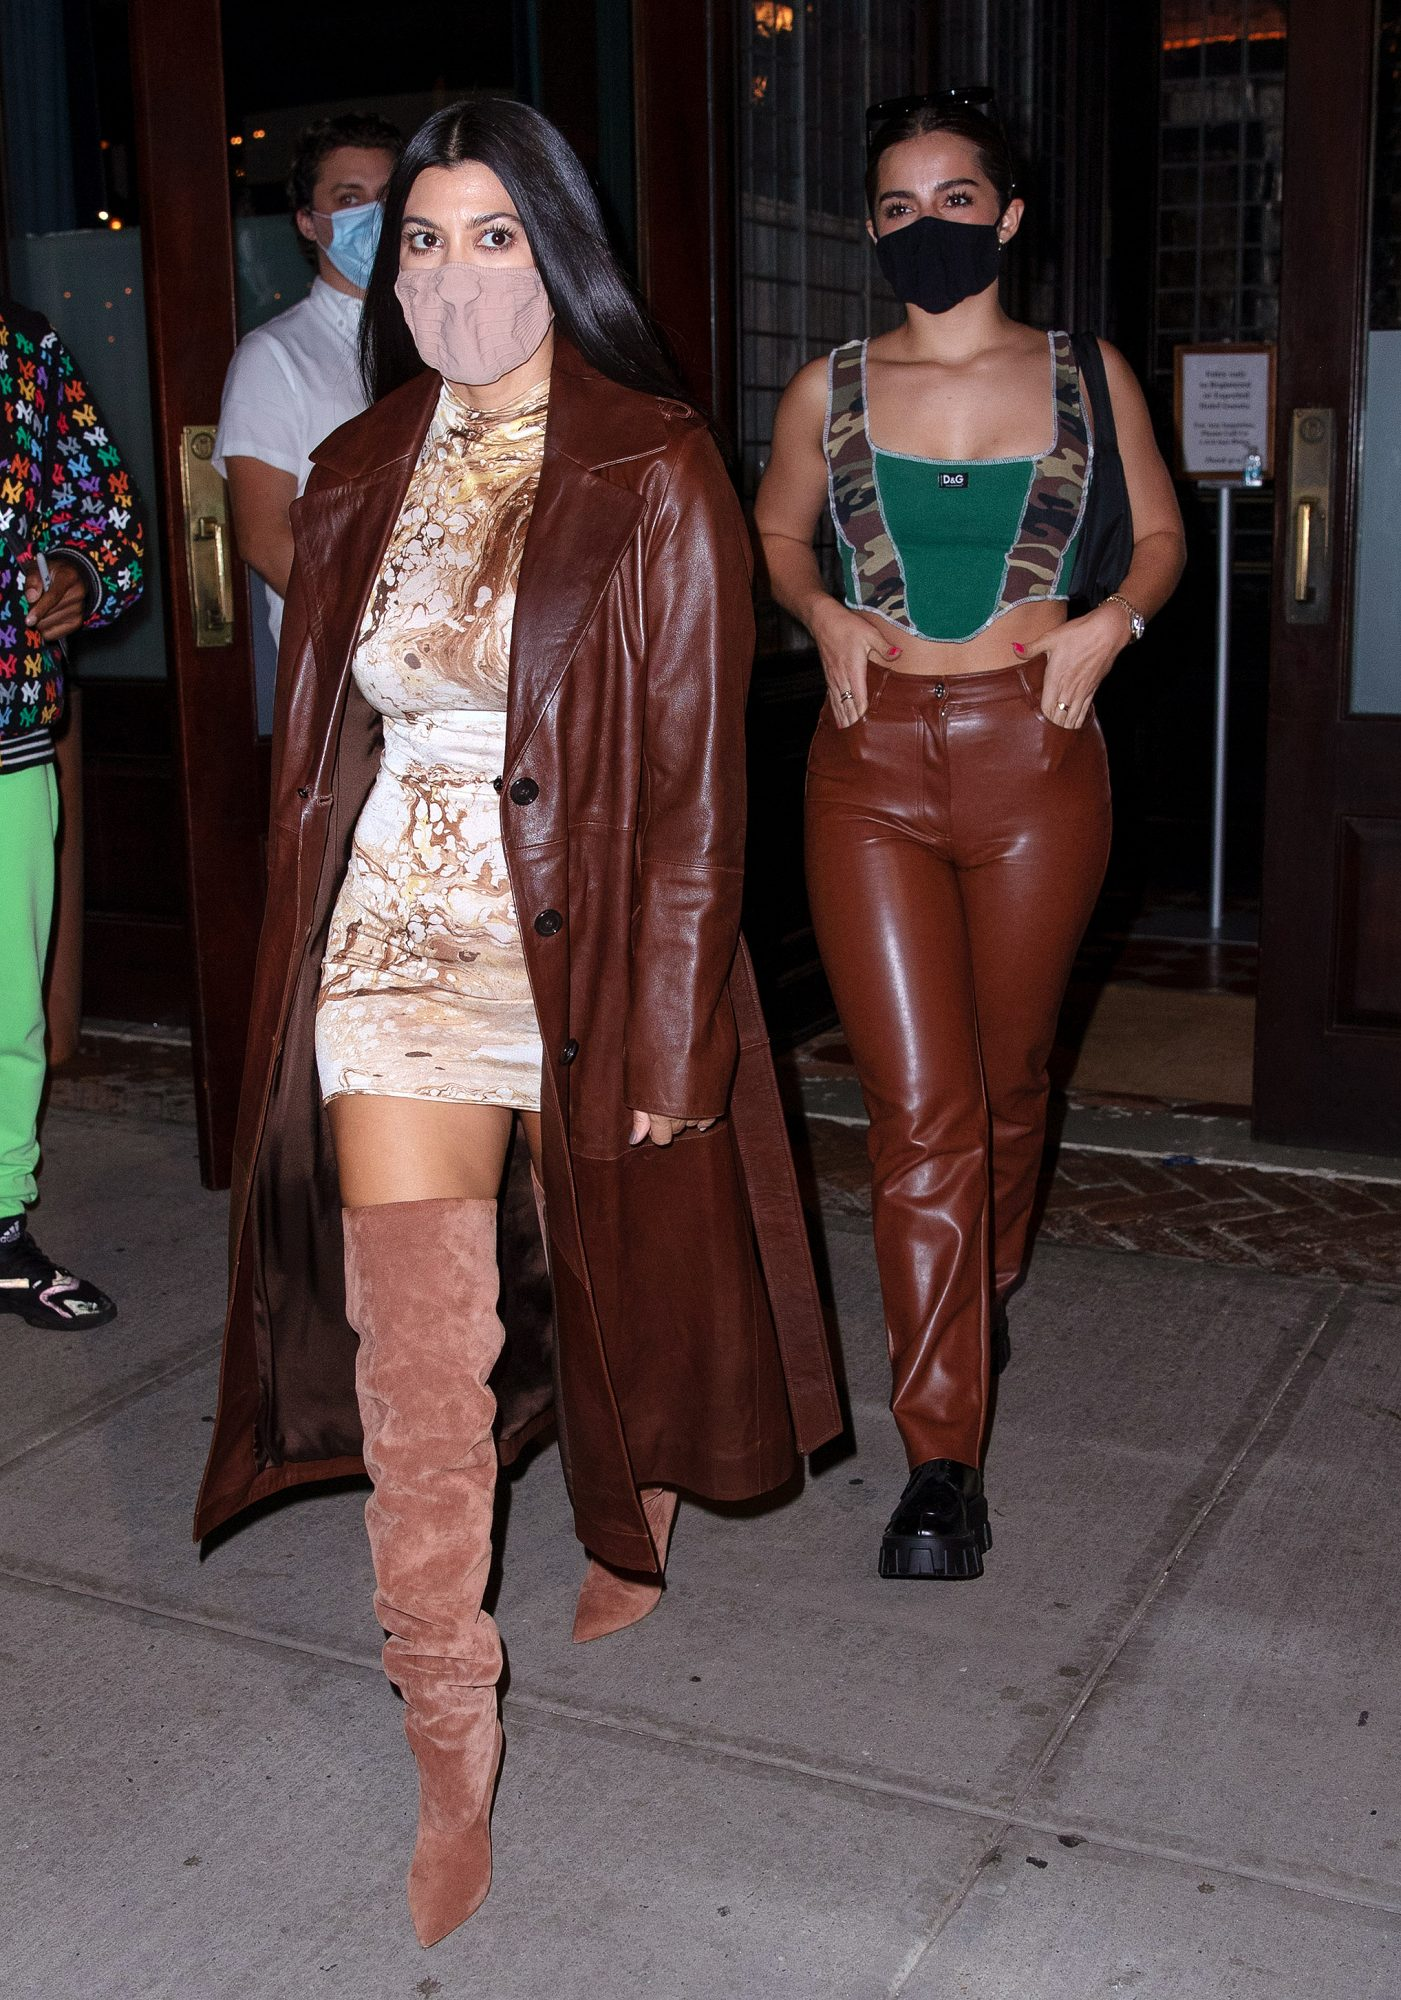 Kourtney Kourtney And Addison Rae Wear Leather Outfits When Out And About In New York City For Dinner